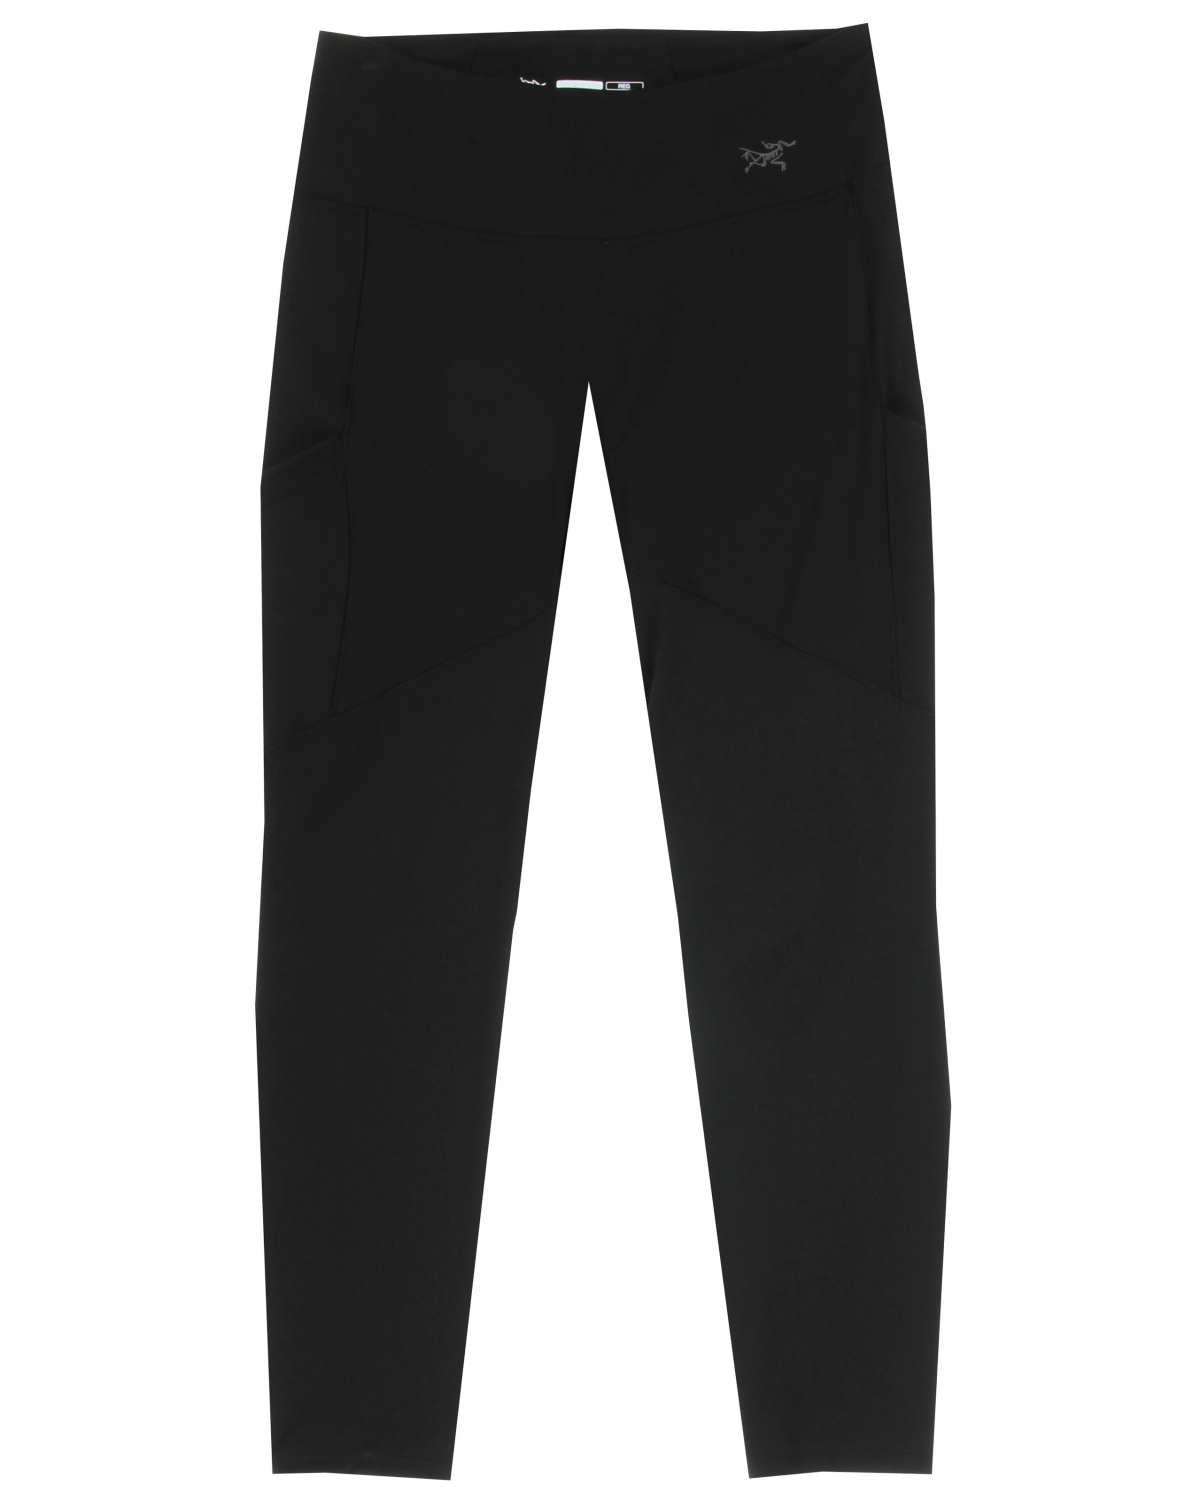 Main product image: Oriel Legging Women's